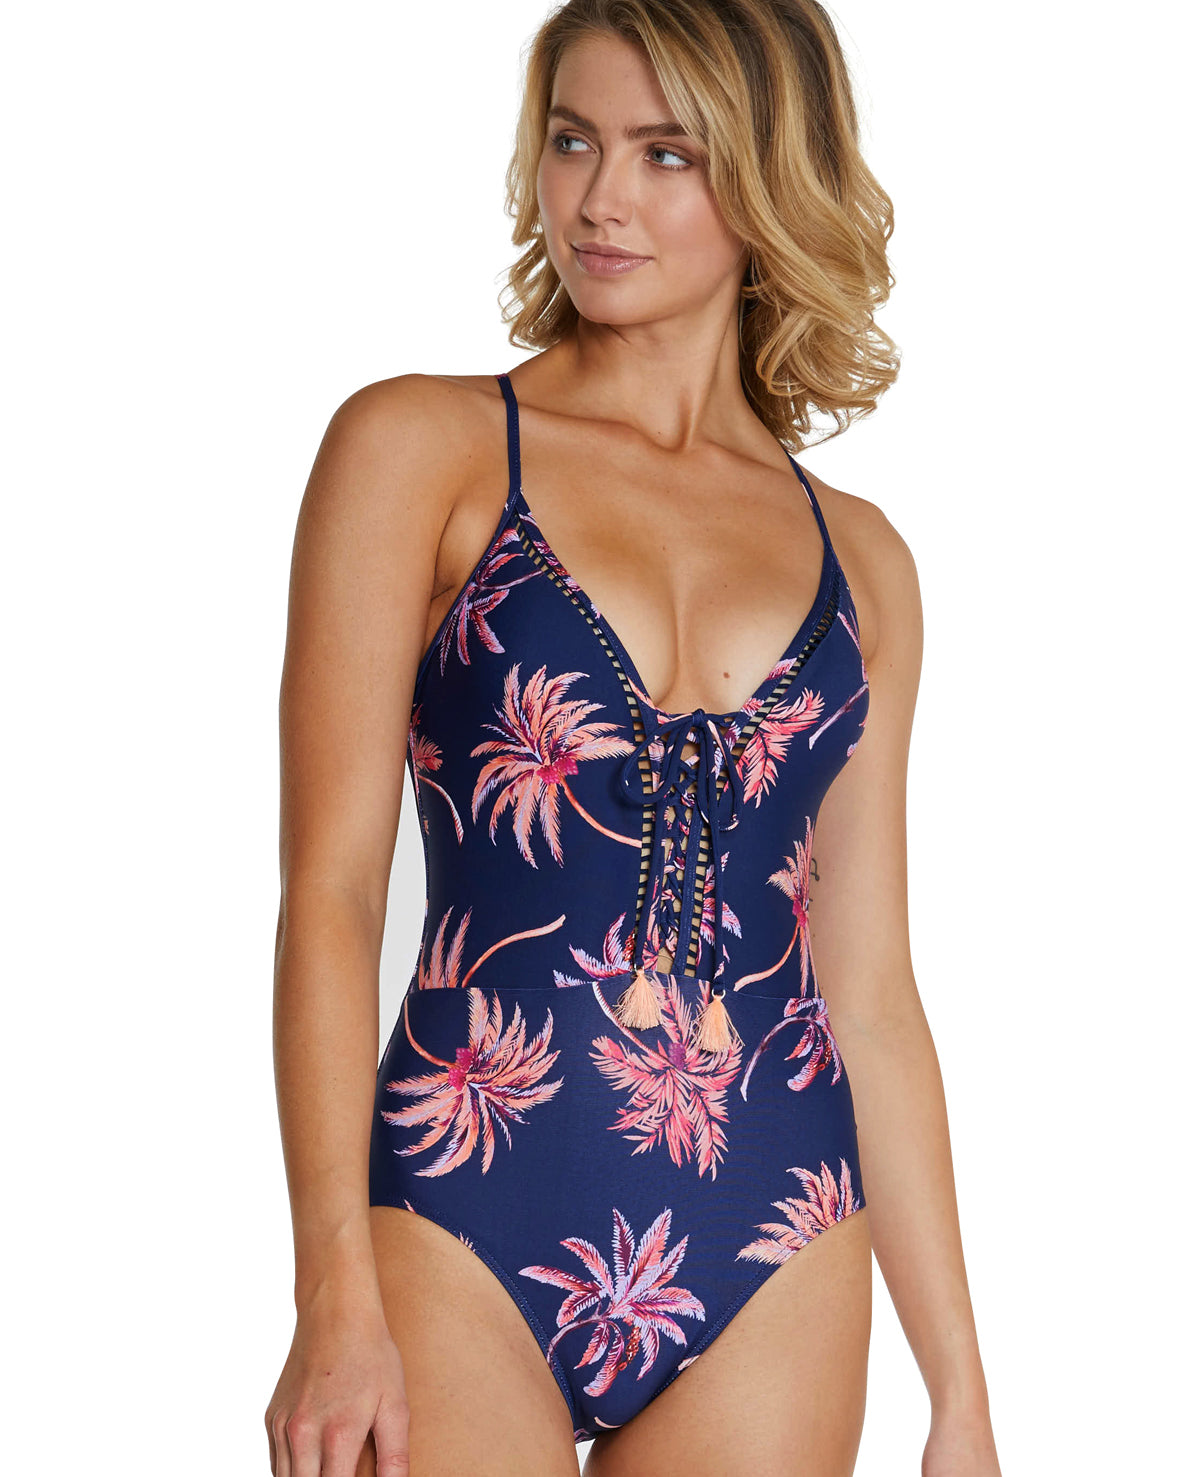 TAHITI PLUNGE LACE-UP ONE PIECE SWIMSUIT